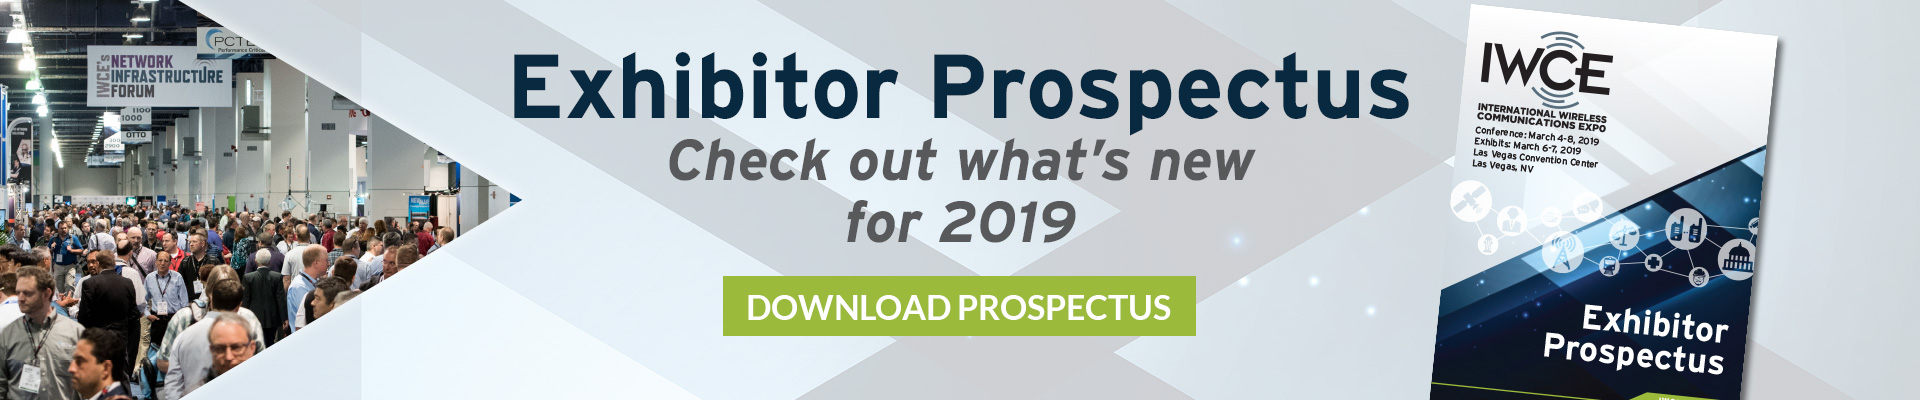 IWCE 2019 Exhibitor Prospectus Download Form